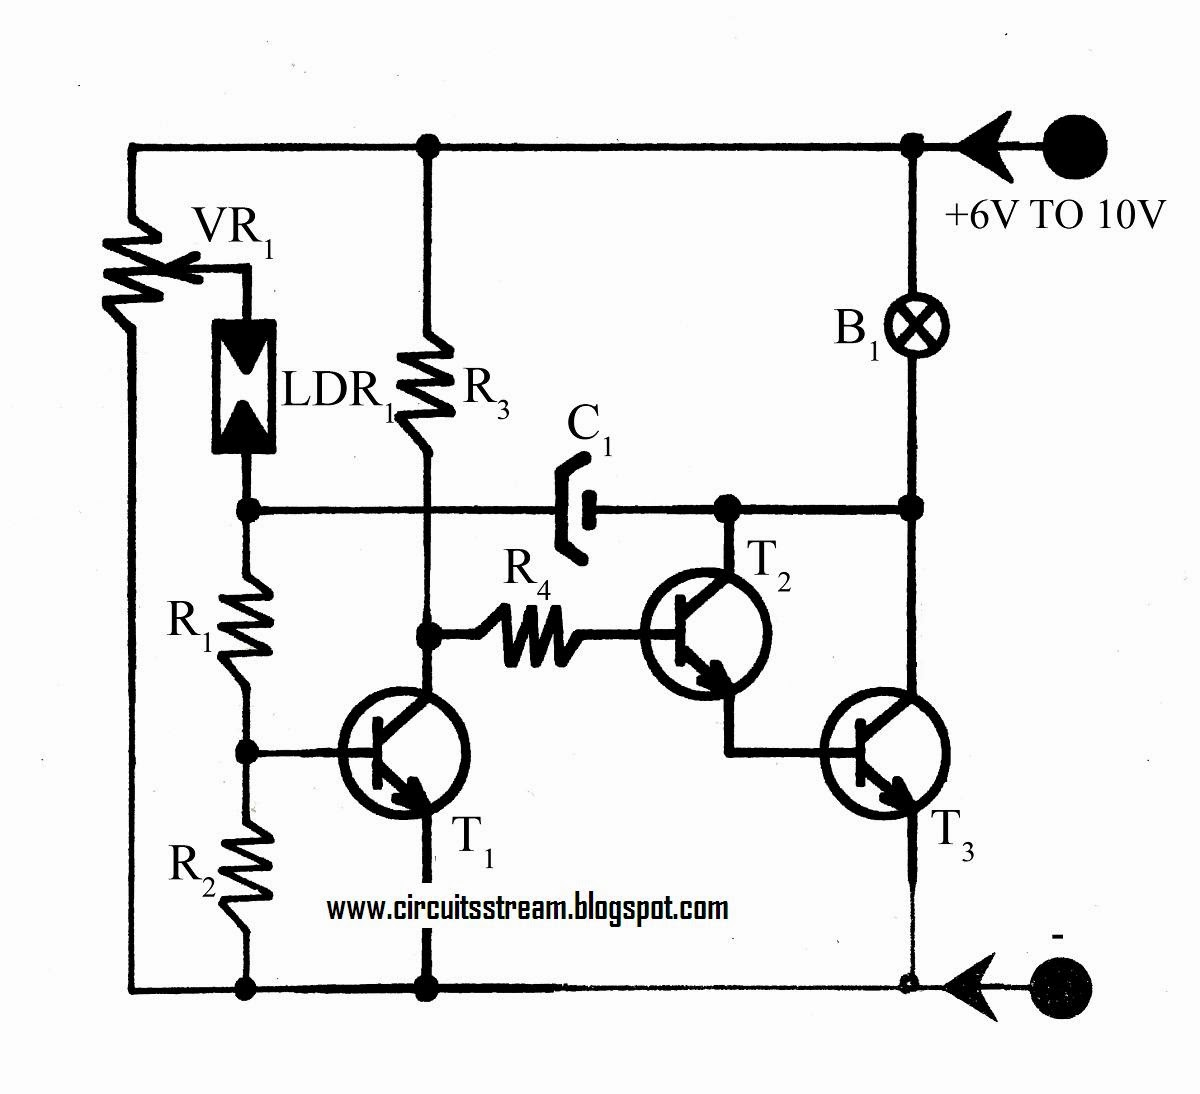 Build A Flashing Light With Twilight Switch Circuit Diagram